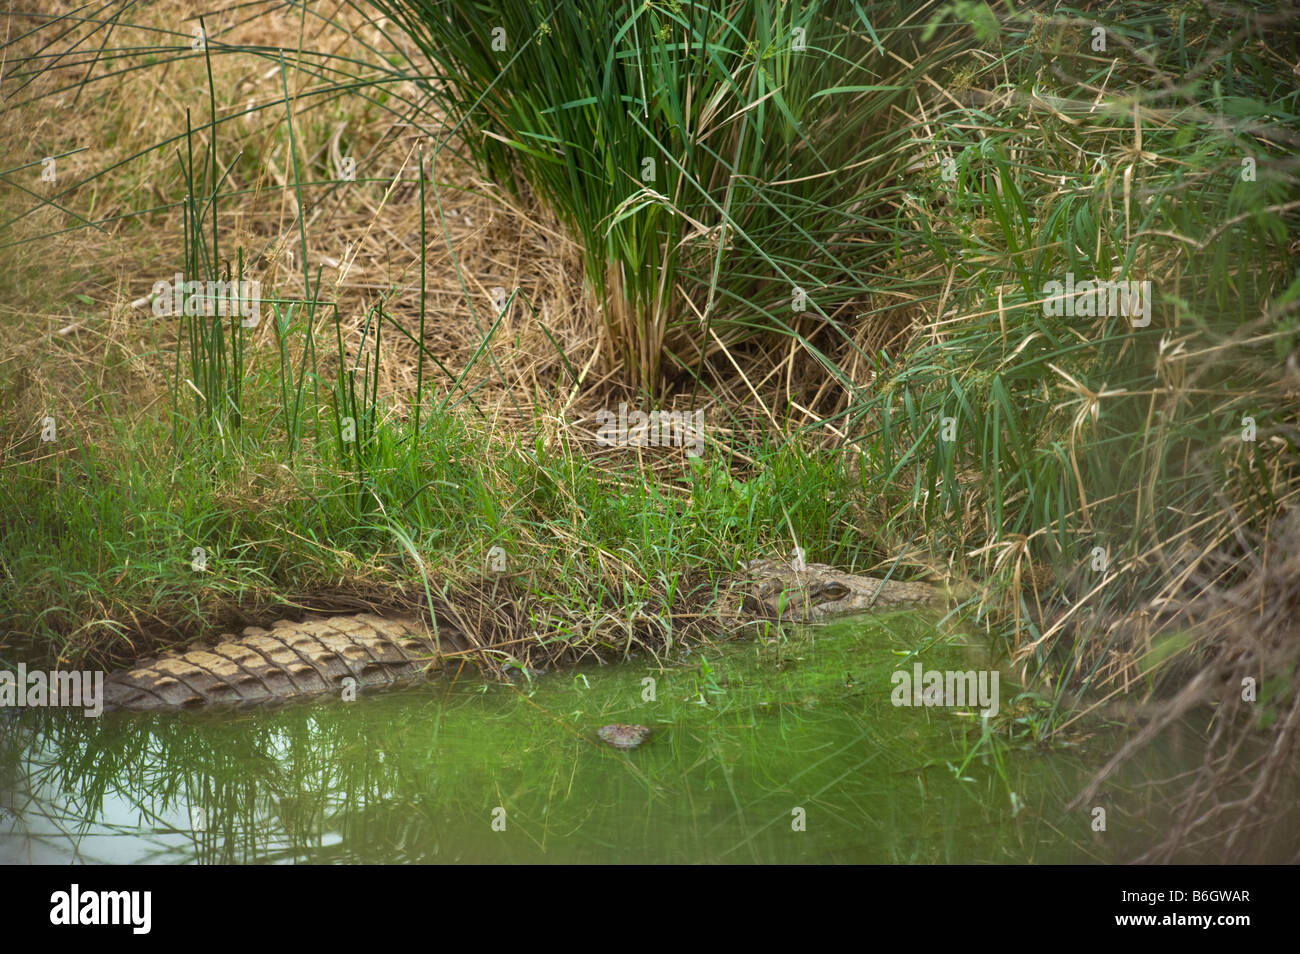 south-Afrika south africa well disguised camouflage crocodile crocodylus niloticus lying at waterhole covered with - Stock Image